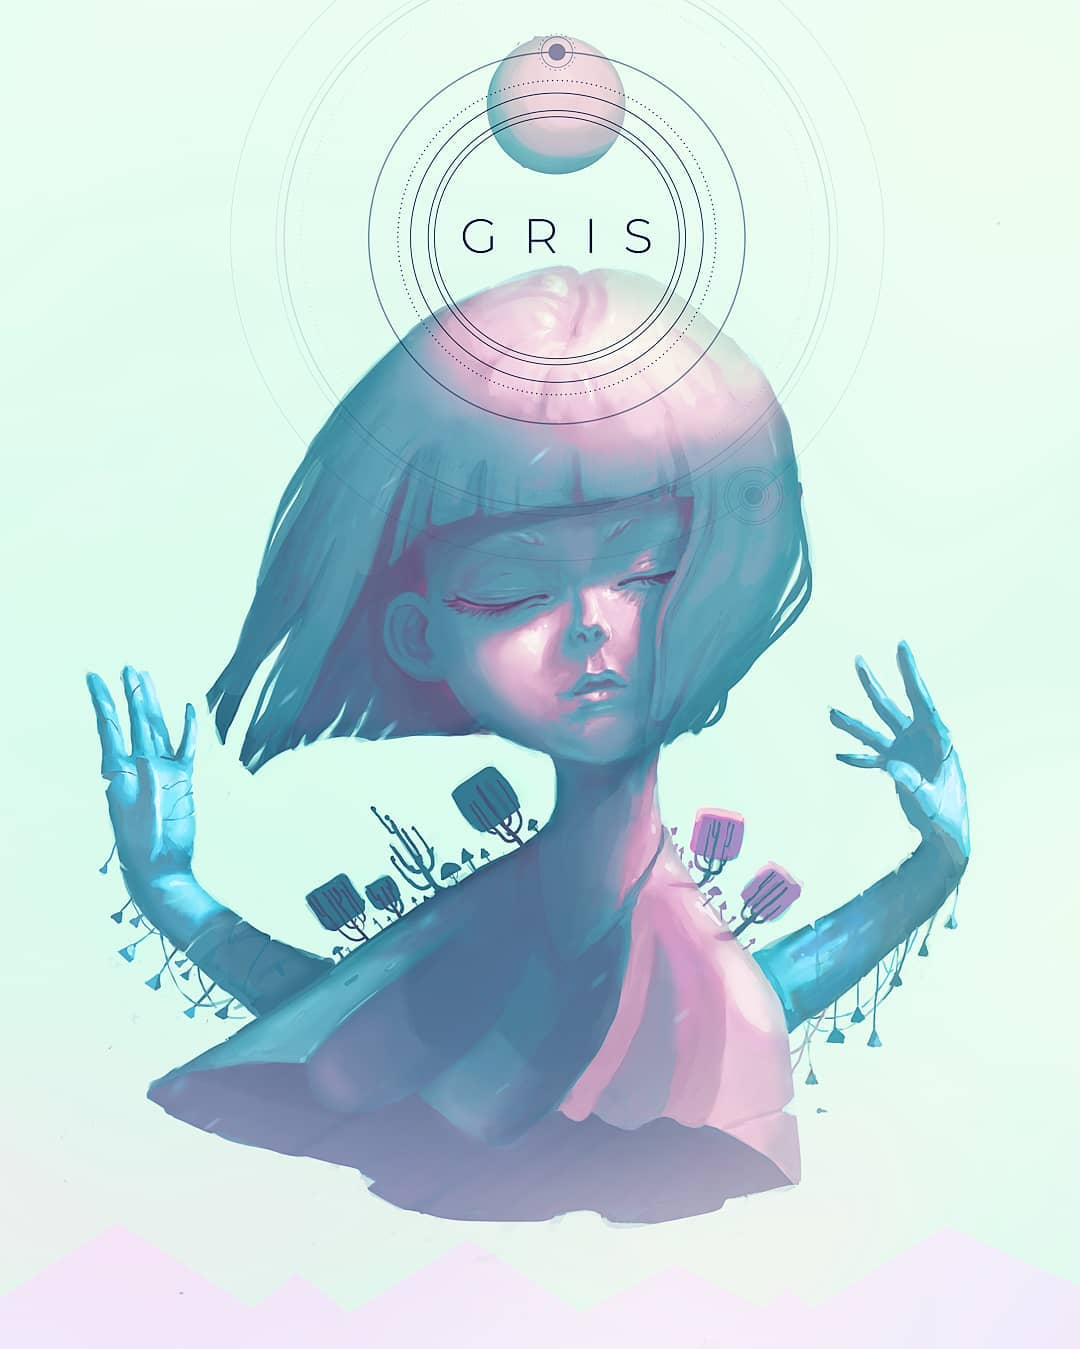 Fan art GRIS – Miina (@artmiina)